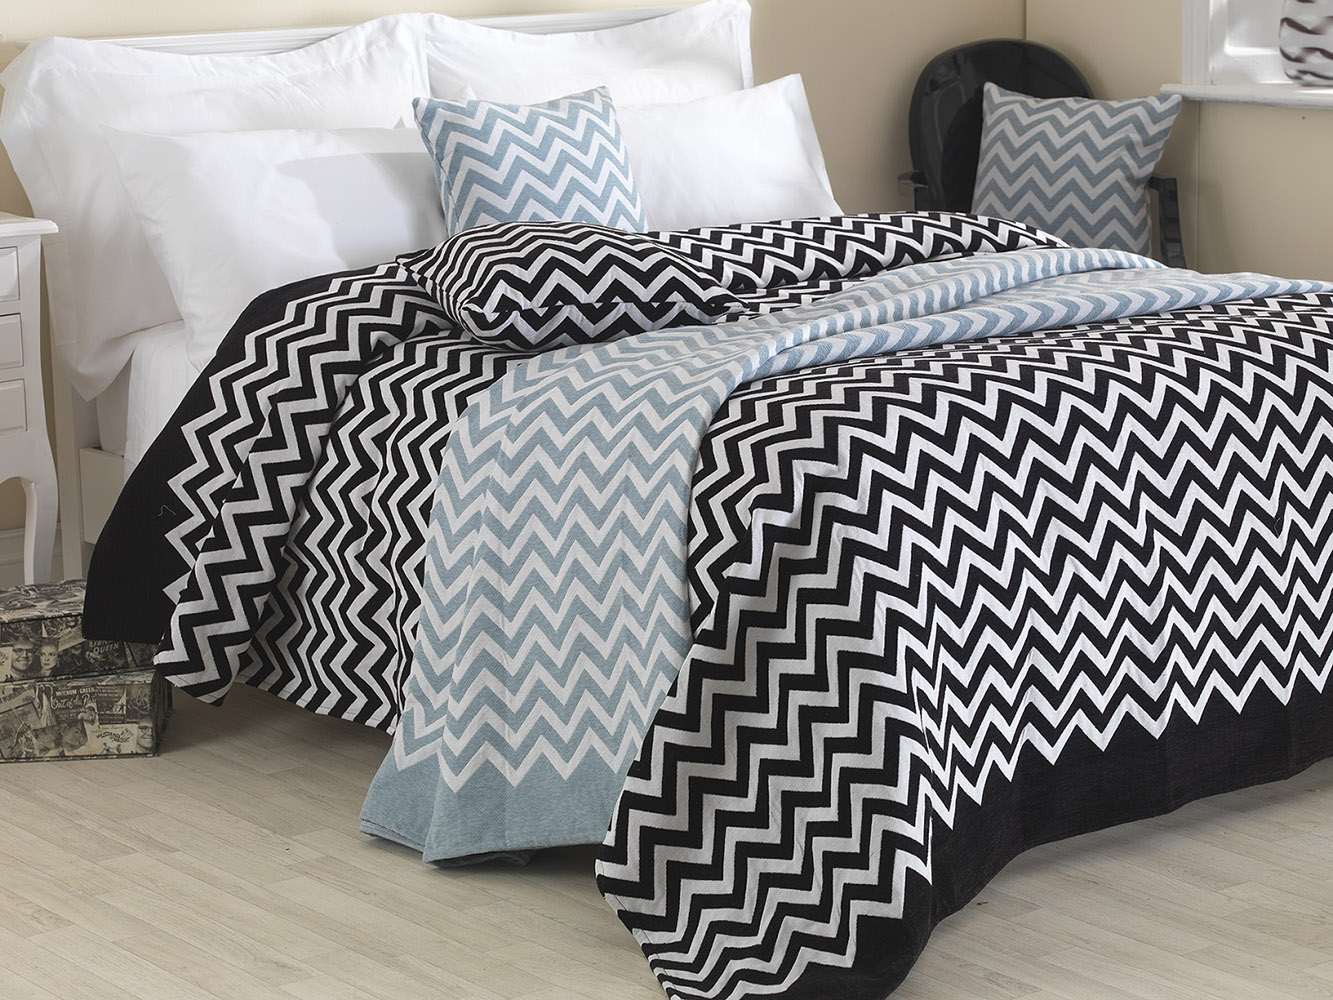 Luxurious Chenille Chevron Bedspreads Throws and Cushion Covers Cases